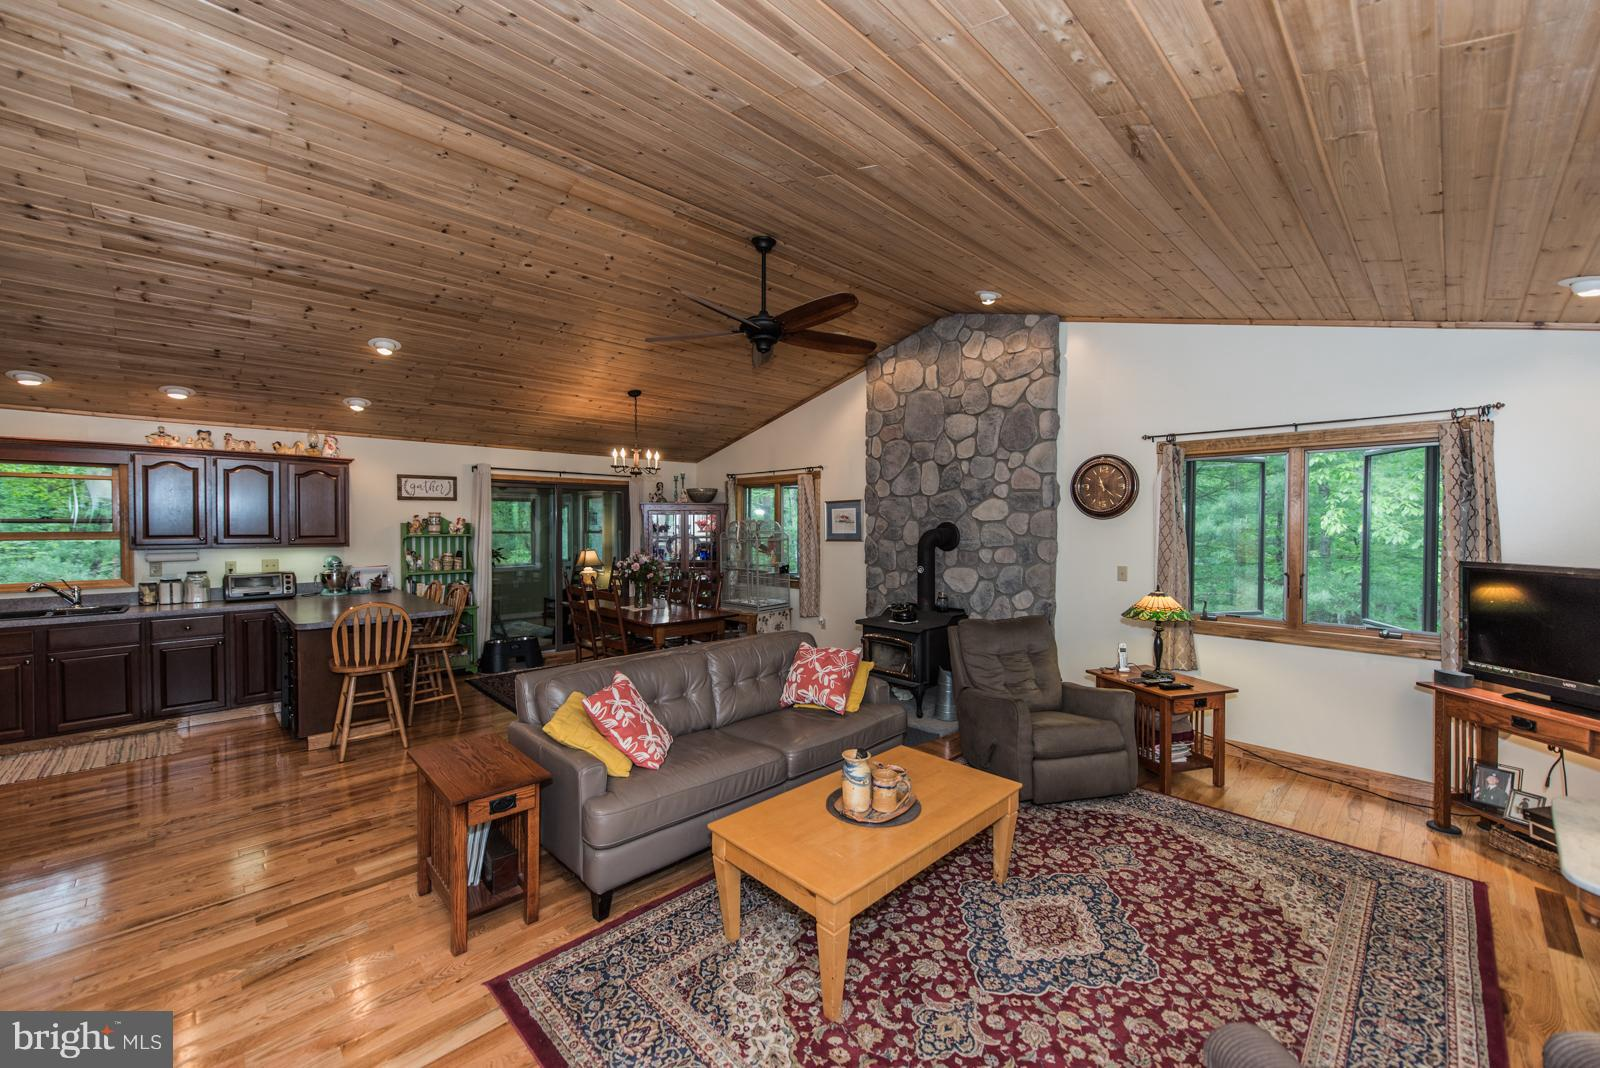 Cedar sided home on a wooded 5.78 acre lot, Short distance to the common area on the Cacapon River.  Tongue and Groove ceiling in kitchen, living and dining areas. 3 bedrooms upstairs, 2 extra rooms downstairs, finished basement w/ barn wood ceiling. The covered front porch welcomes you into the house.  Nice sun room off the dinning room. This house offers:  2018 hot water heater, 2018 heat pump, 2017 12x26 shed, 2017 3 season room, 2017 chimney cap installed, 2017 gutter guards, 2016 new fencing, 2016 whole house generator w/ 2 year mainenance agreement which can be extended, 2016 new kitchen appliances including refrigerator, propane stove and dishwasher.  A must see when looking for a well maintained house close to the Cacapon River.  Home Warranty Included.